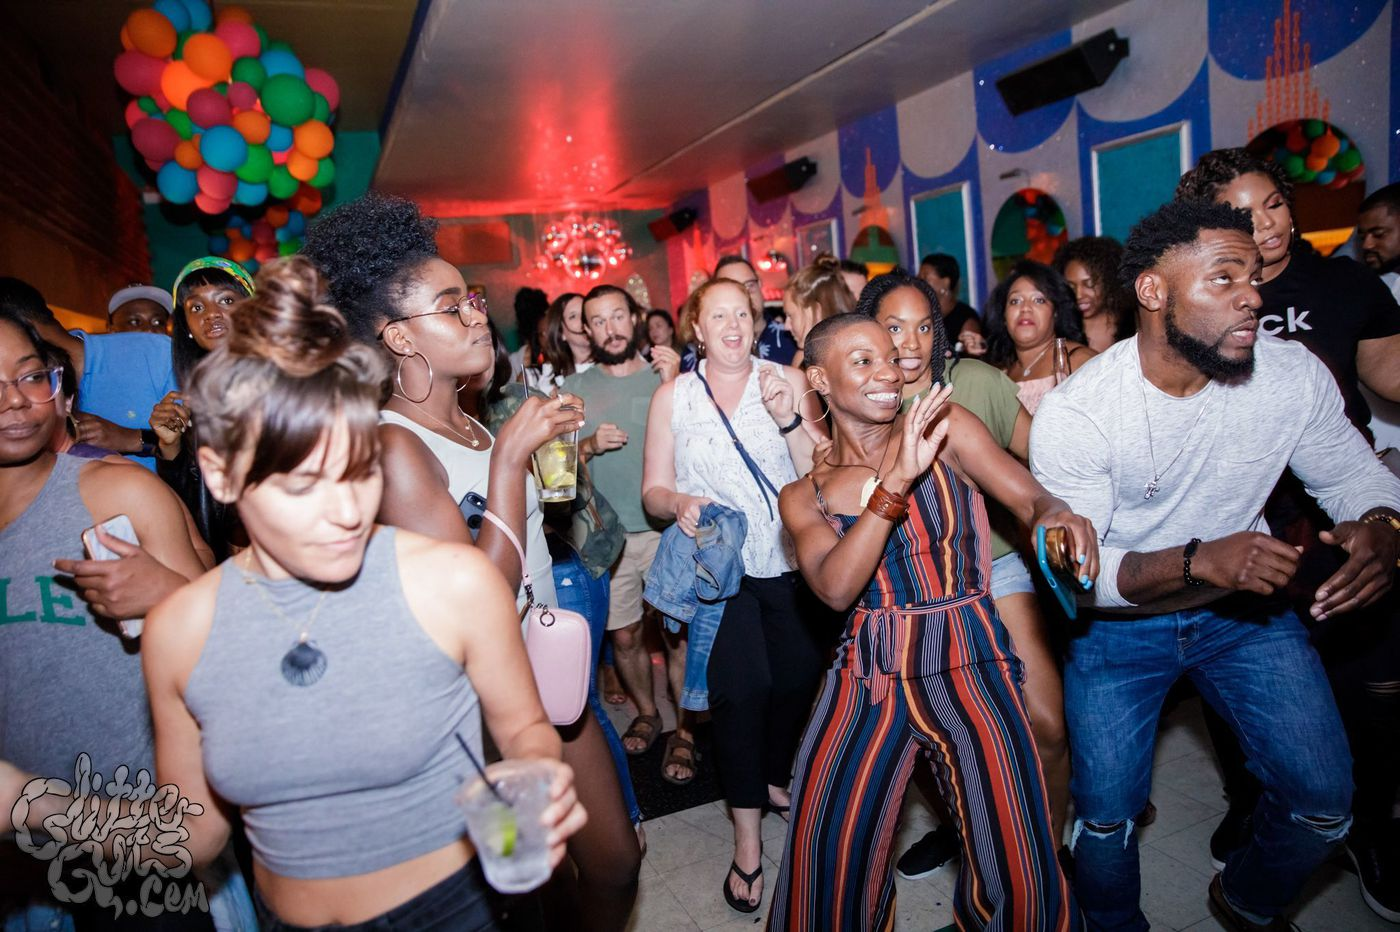 New York's long running old school hip hop dance party is coming to Philly